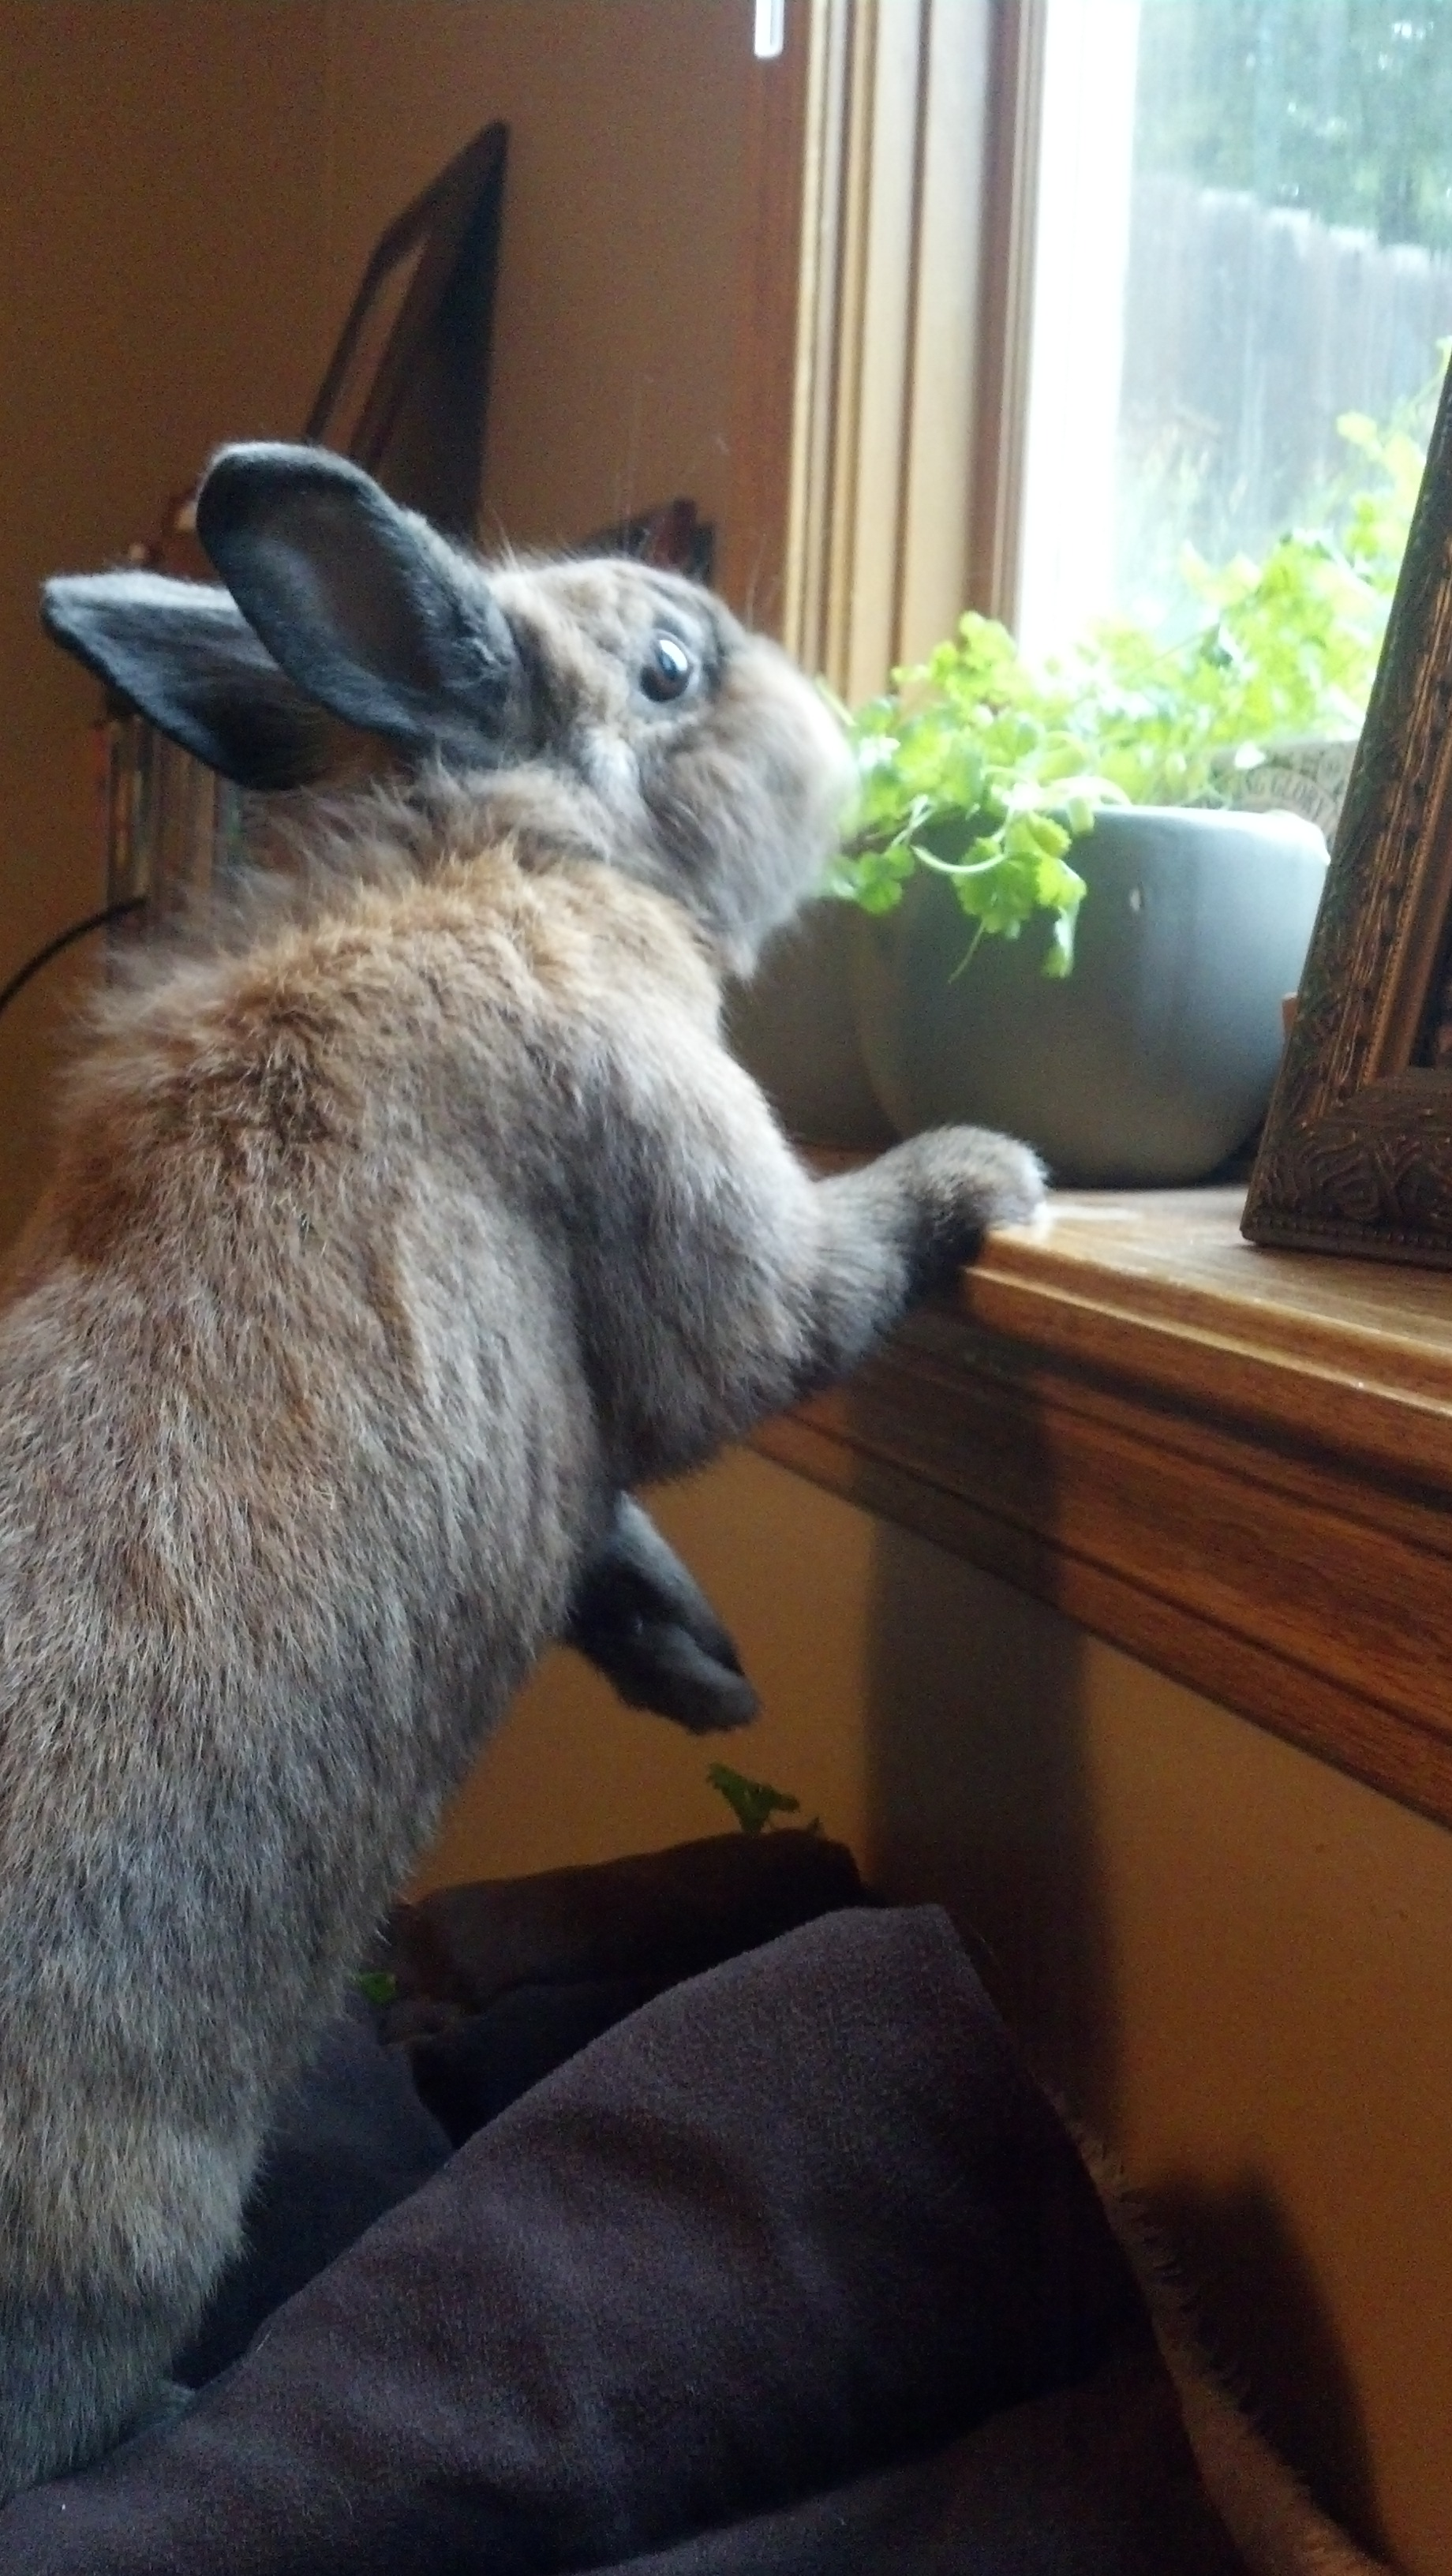 Bunny Is Caught Nomming Human's Windowsill Cilantro